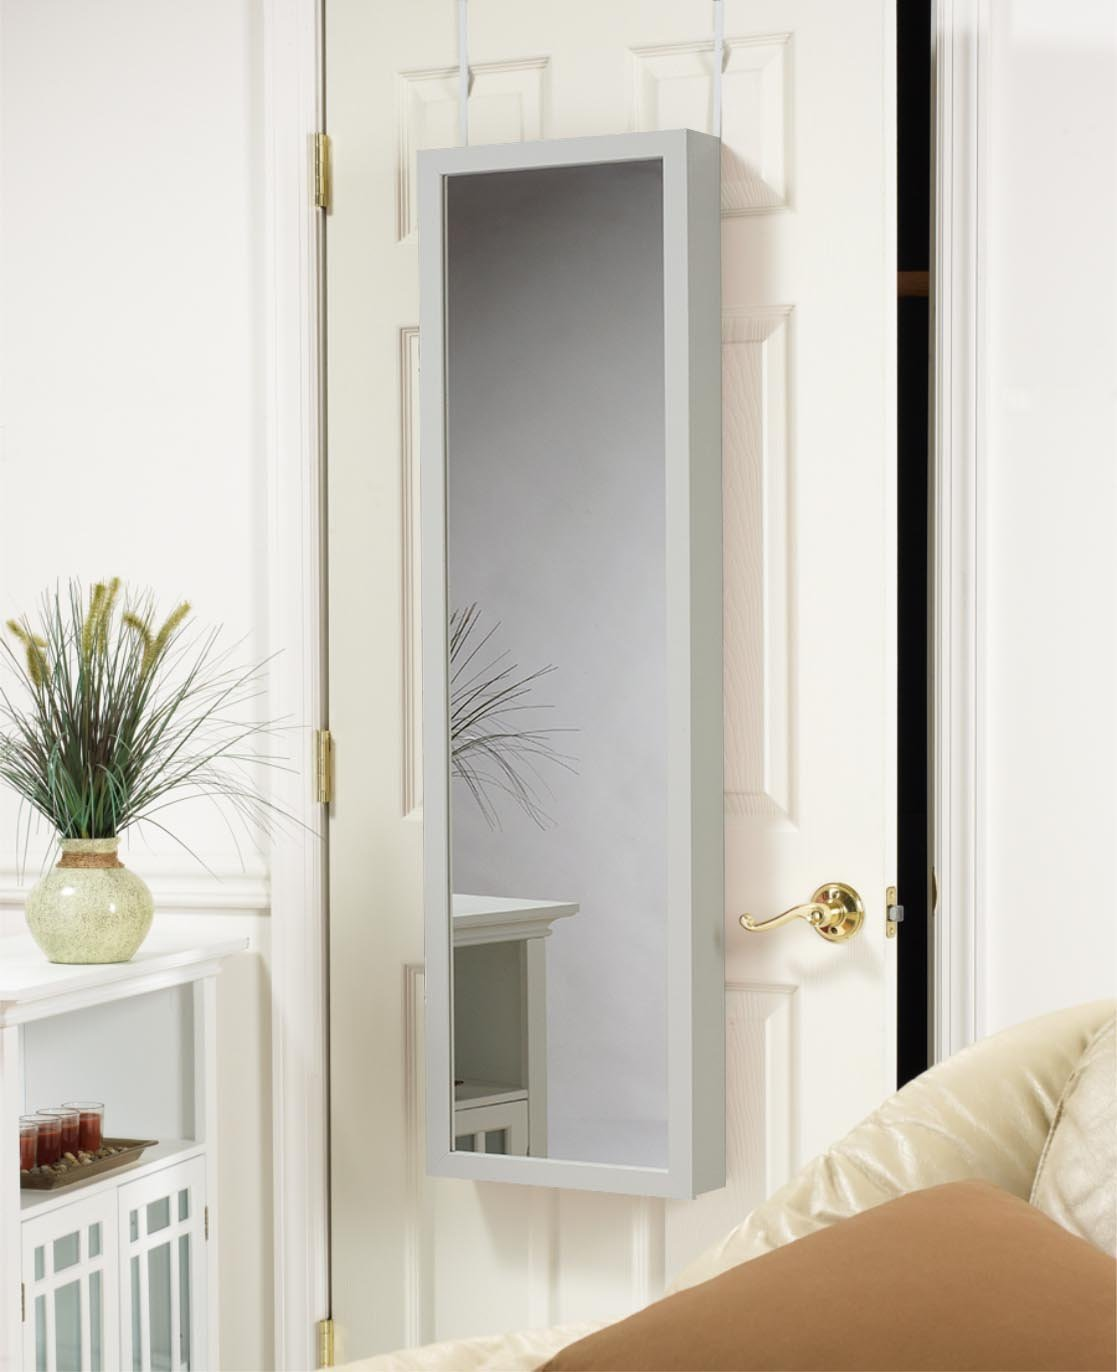 Plaza Astoria Wall/Door-Mount Jewelry Armoire, White by Plaza Astoria (Image #5)